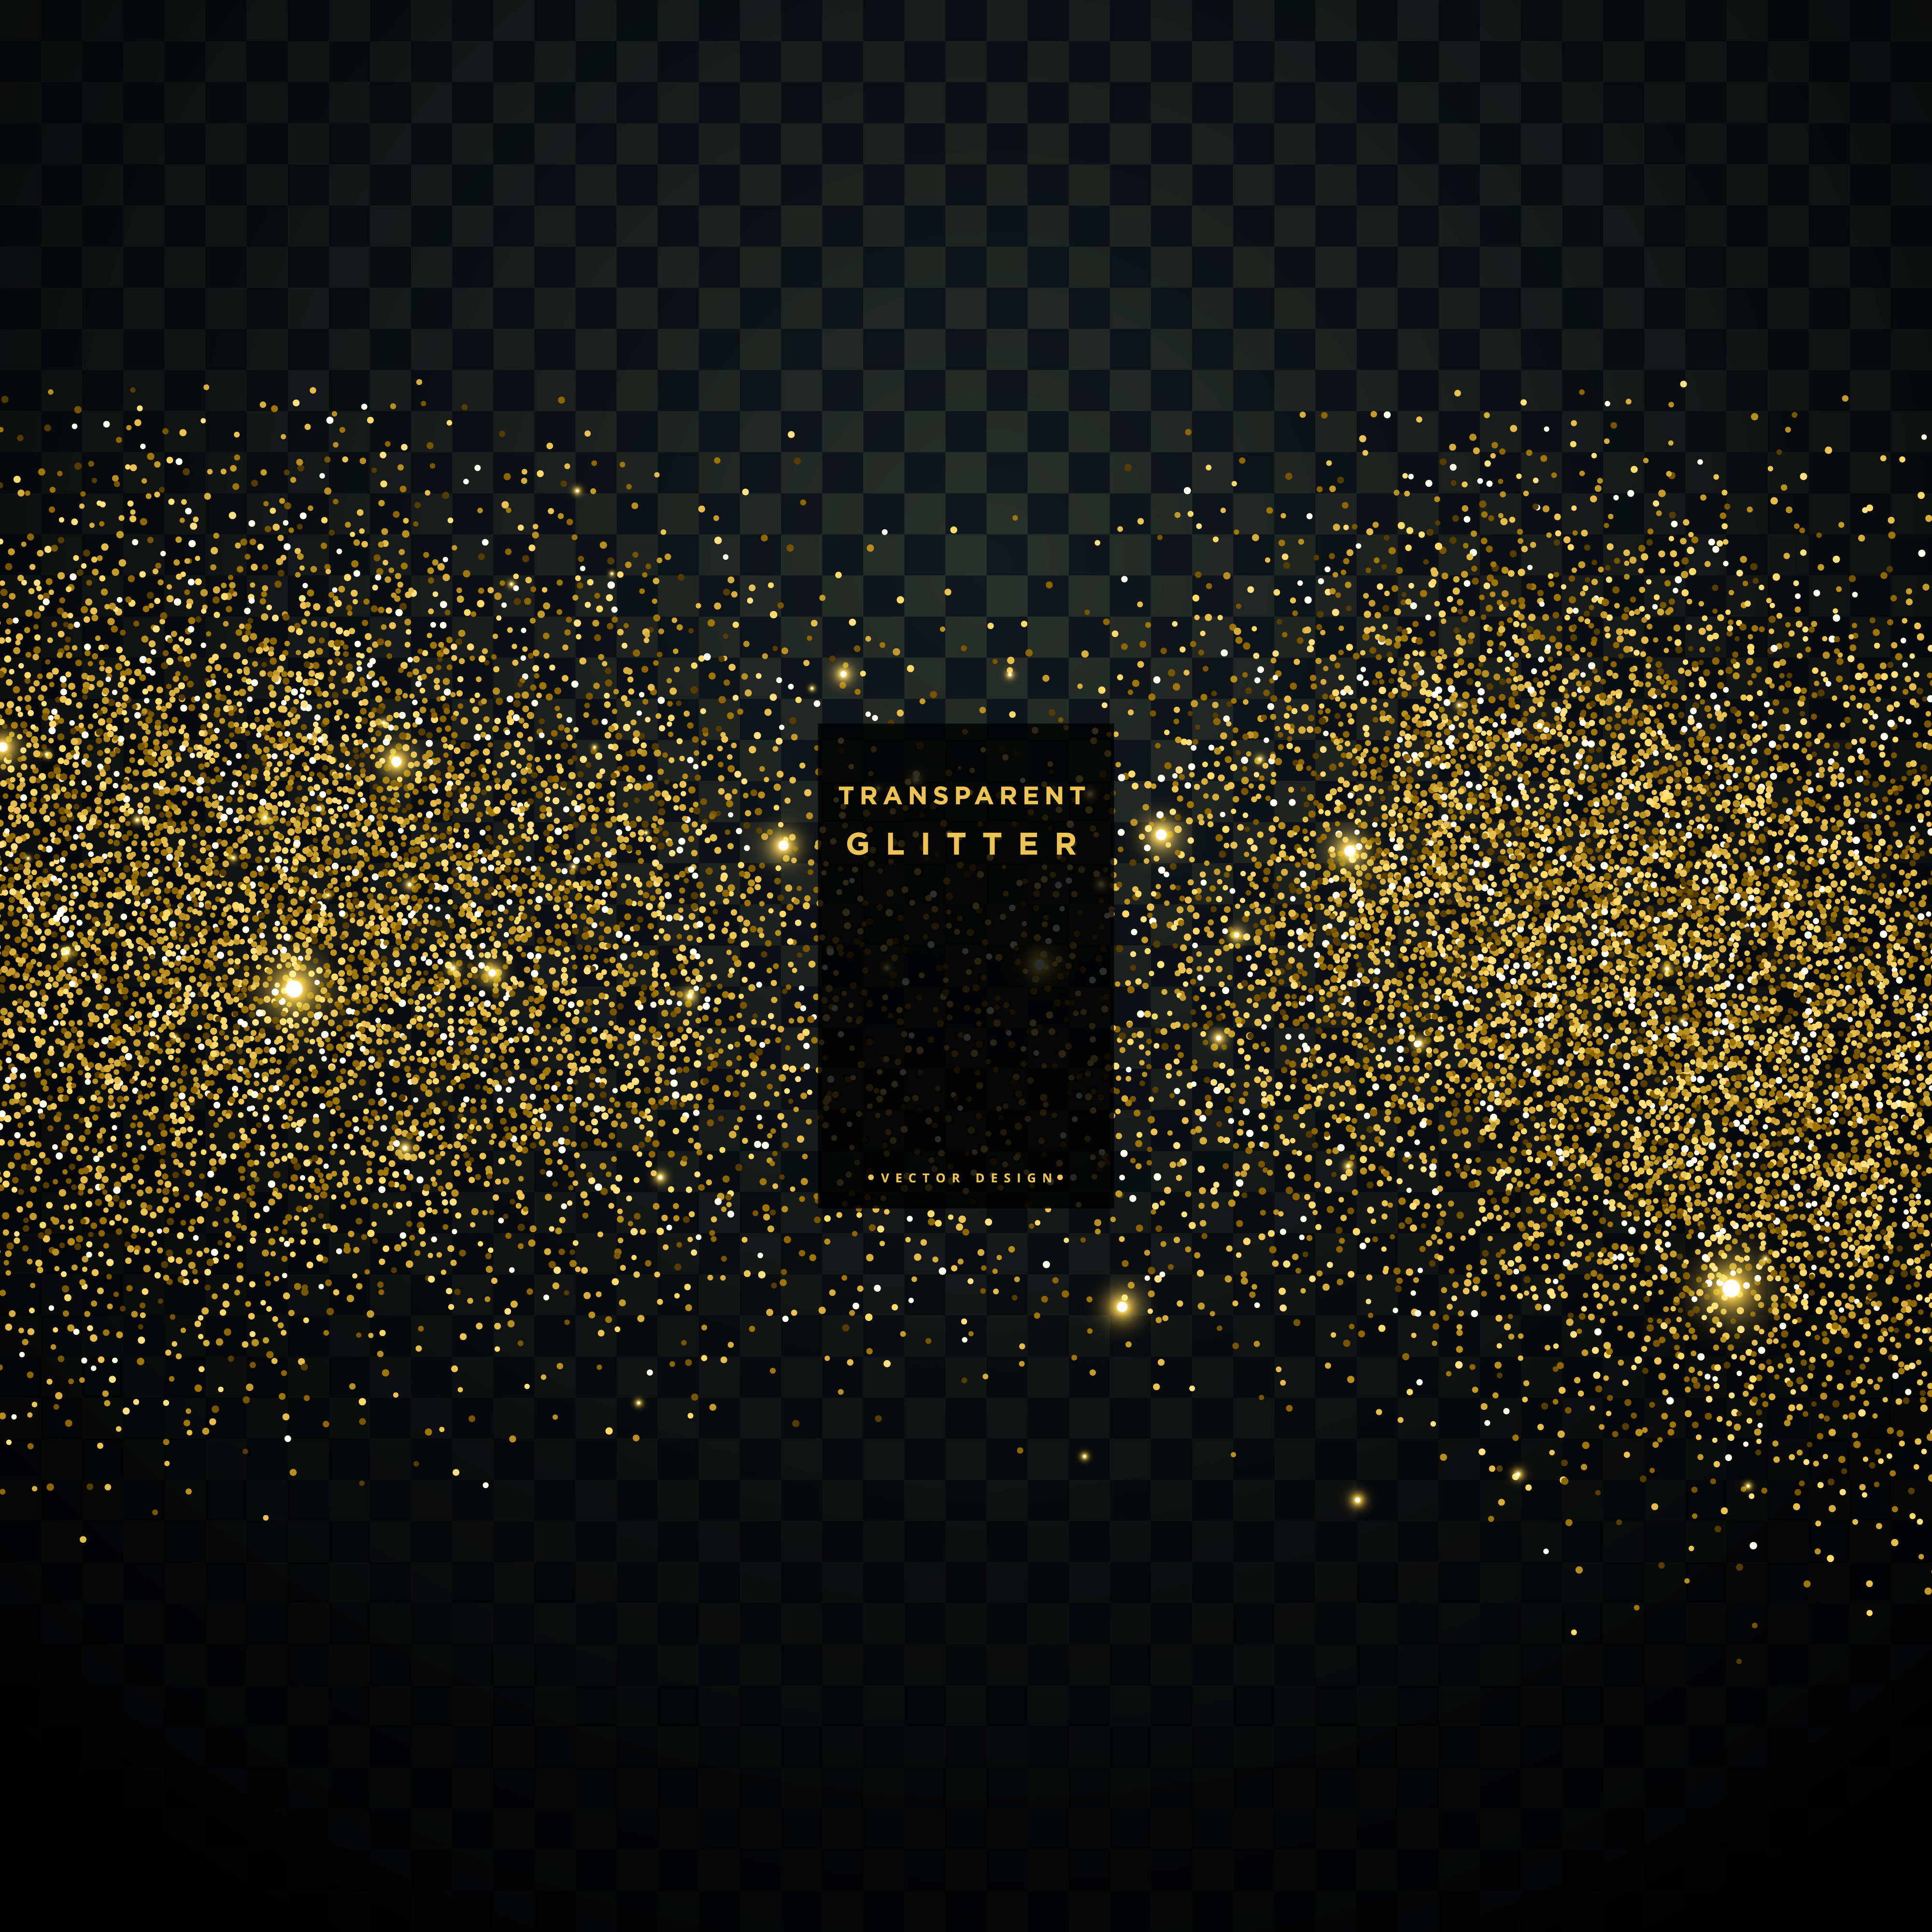 Black Background With Golden Glitter Particle Celebration